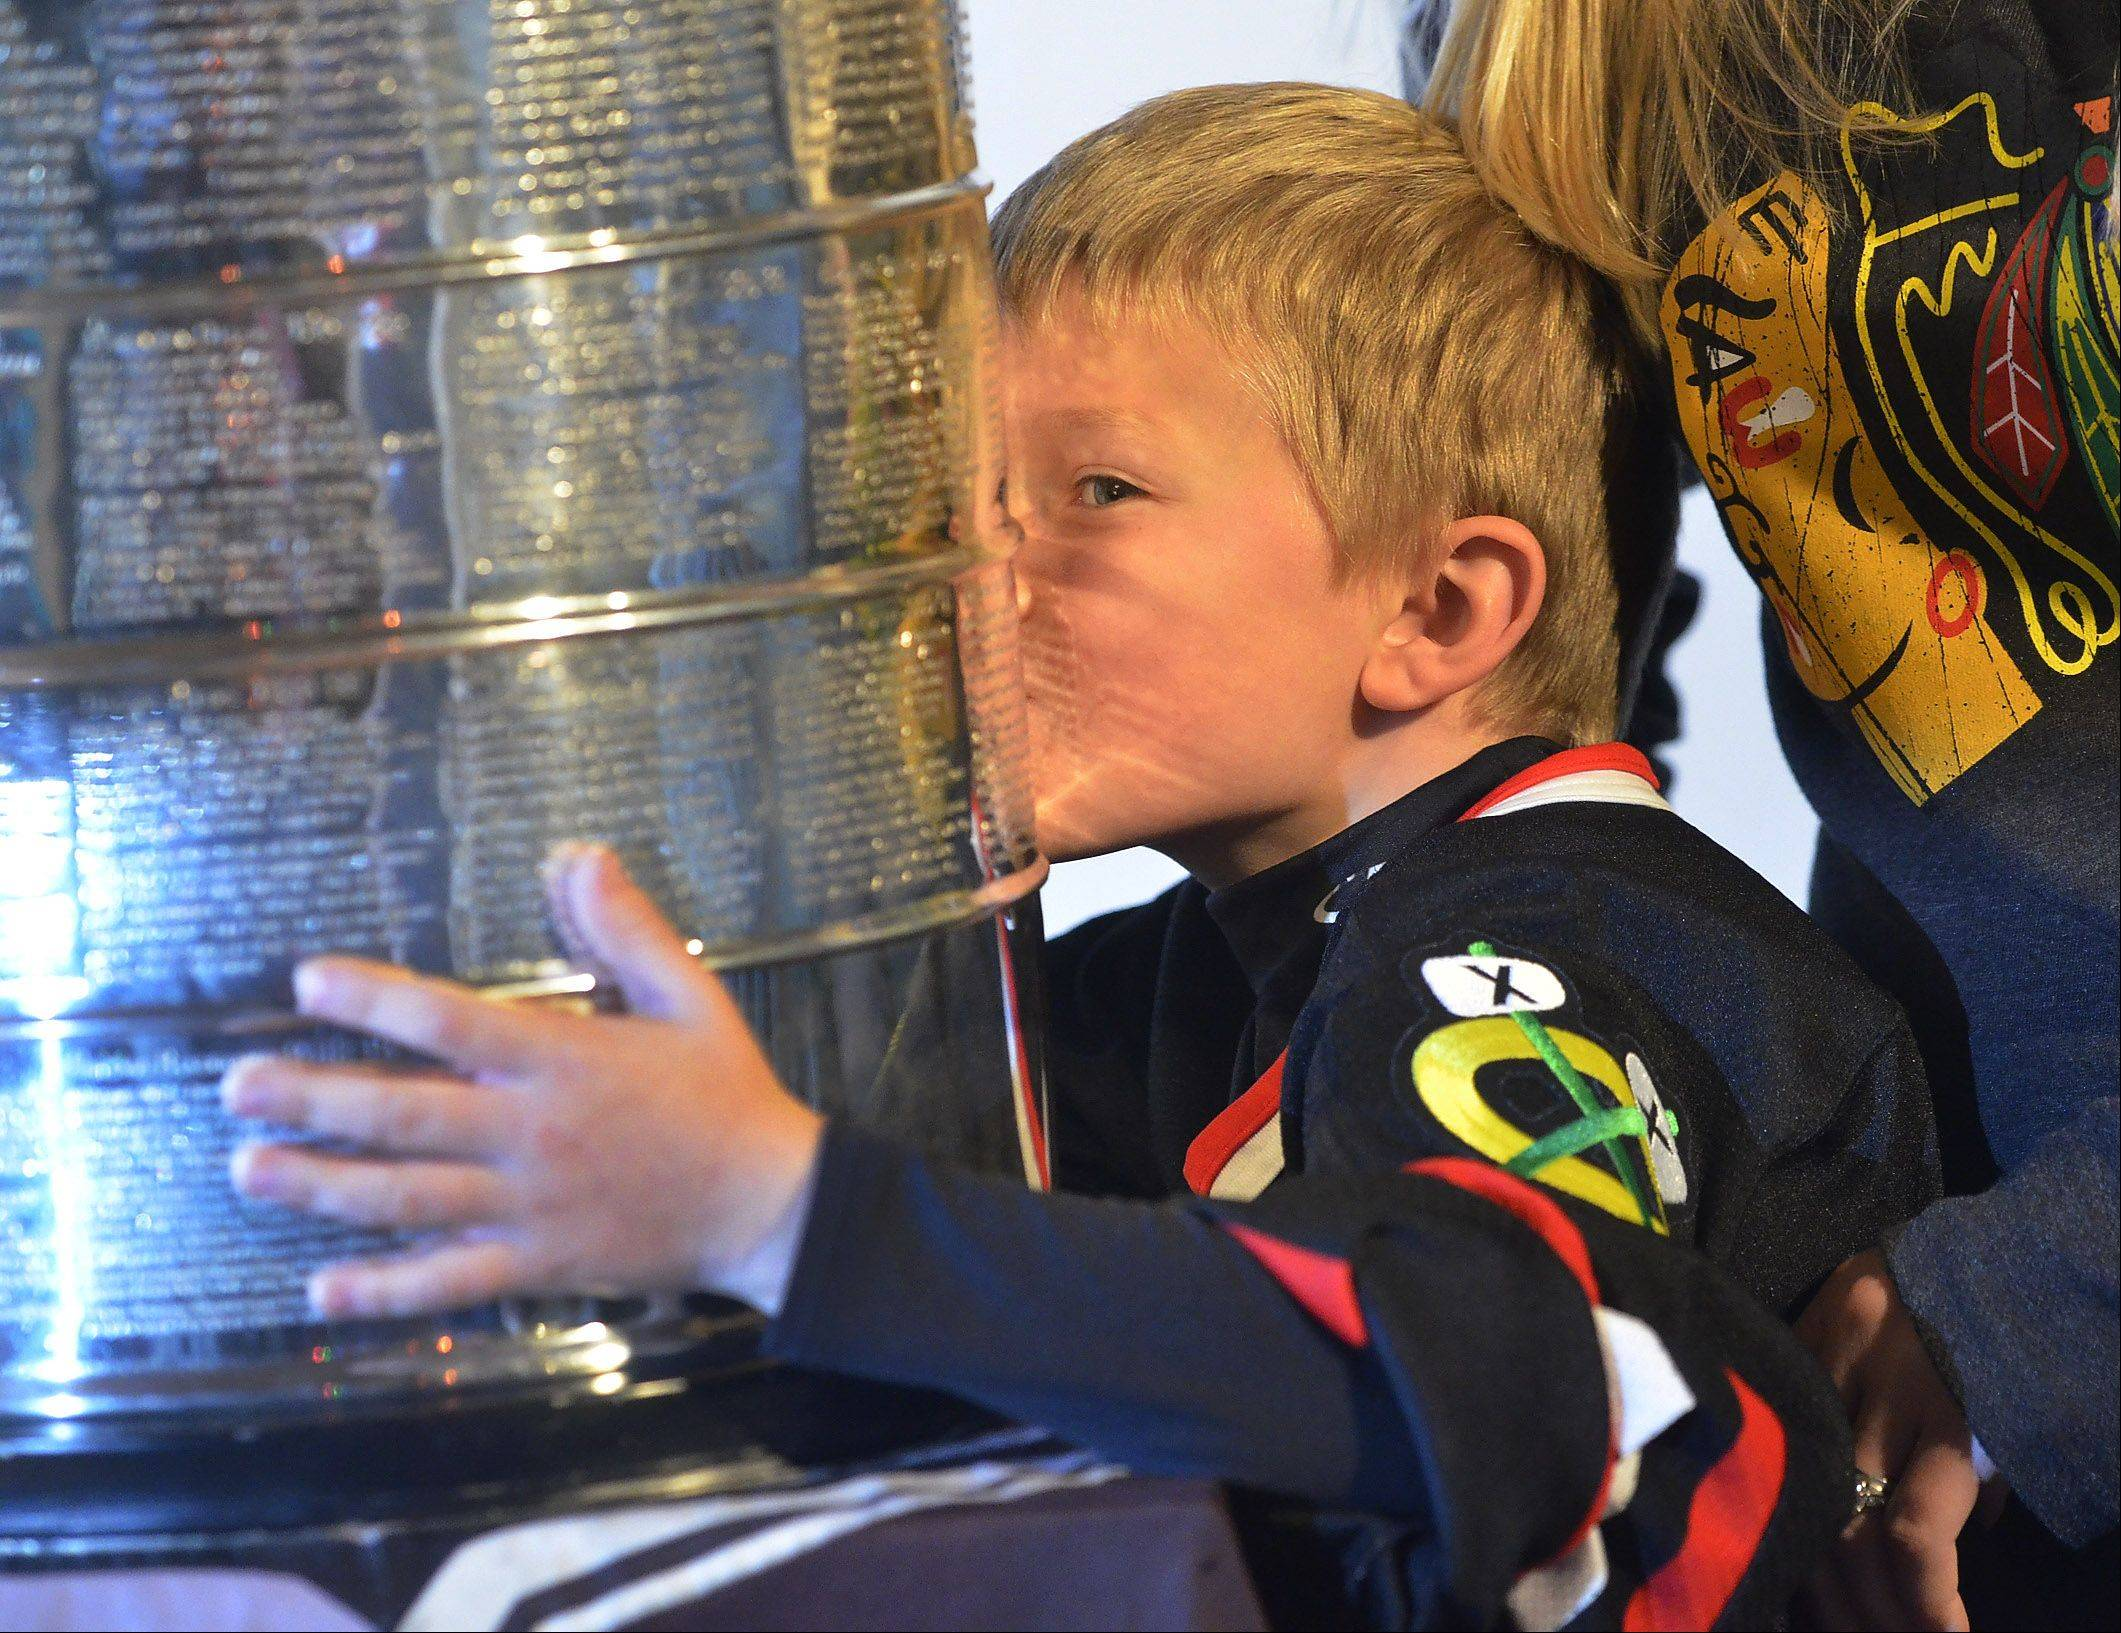 Jacob Thorby, of Schaumburg, gives a smooch to the Stanley Cup on display at the Trickster Art Gallery in Schaumburg Saturday.